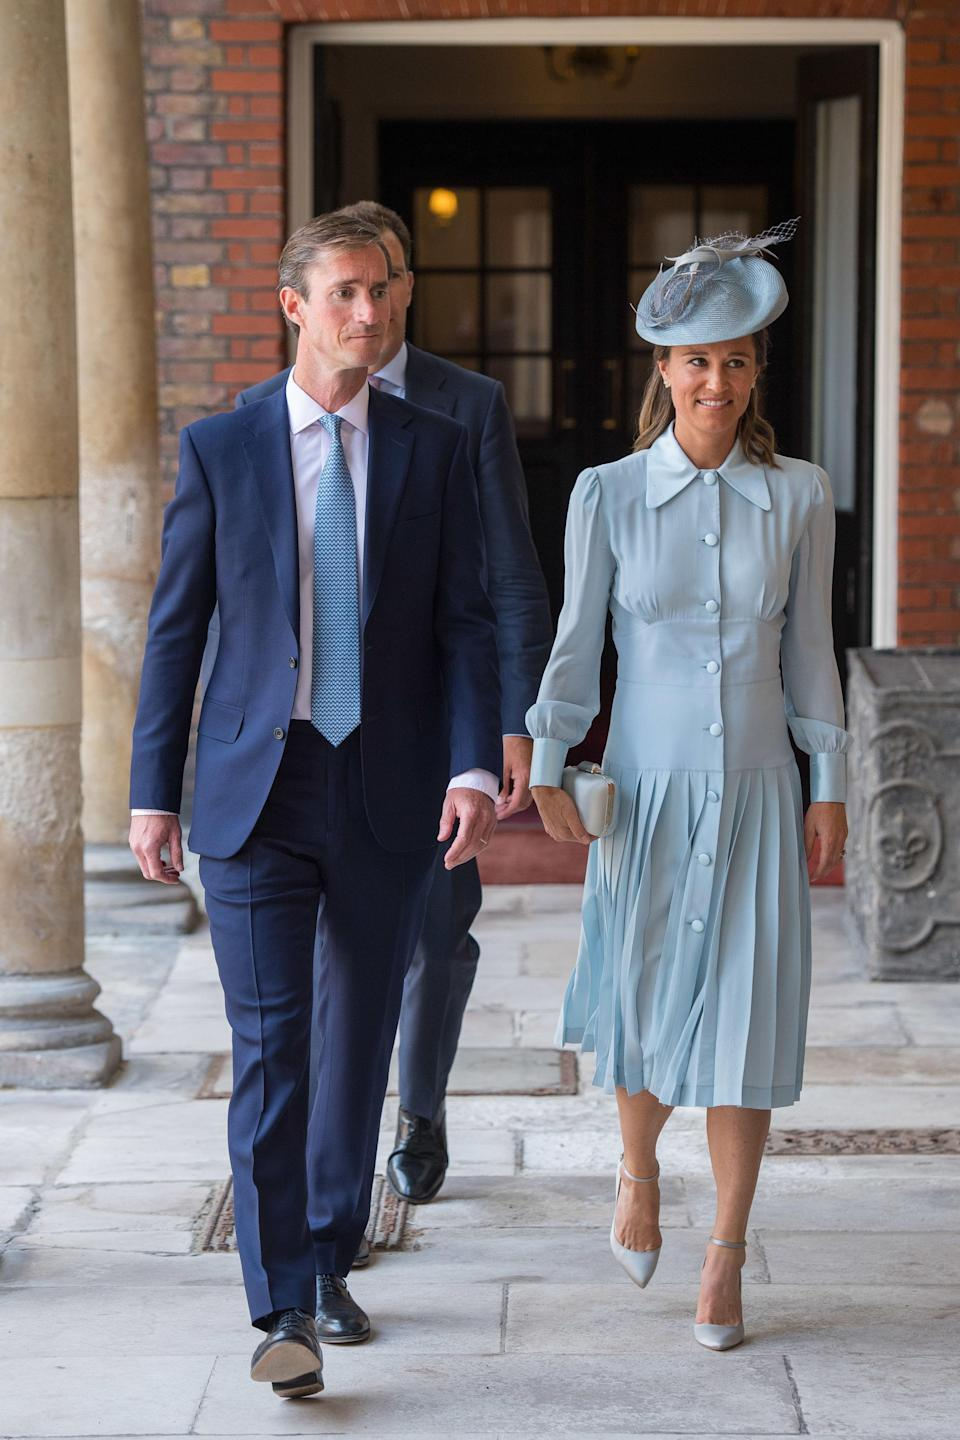 <p>For her nephew's royal christening on 9 July 2018, Pippa Middleton chose a powder blue dress by Alessandra Rich. She accessorised the look with a co-ordinating hat by Jane Taylor and Jimmy Choo shoes. <em>[Photo: PA]</em> </p>